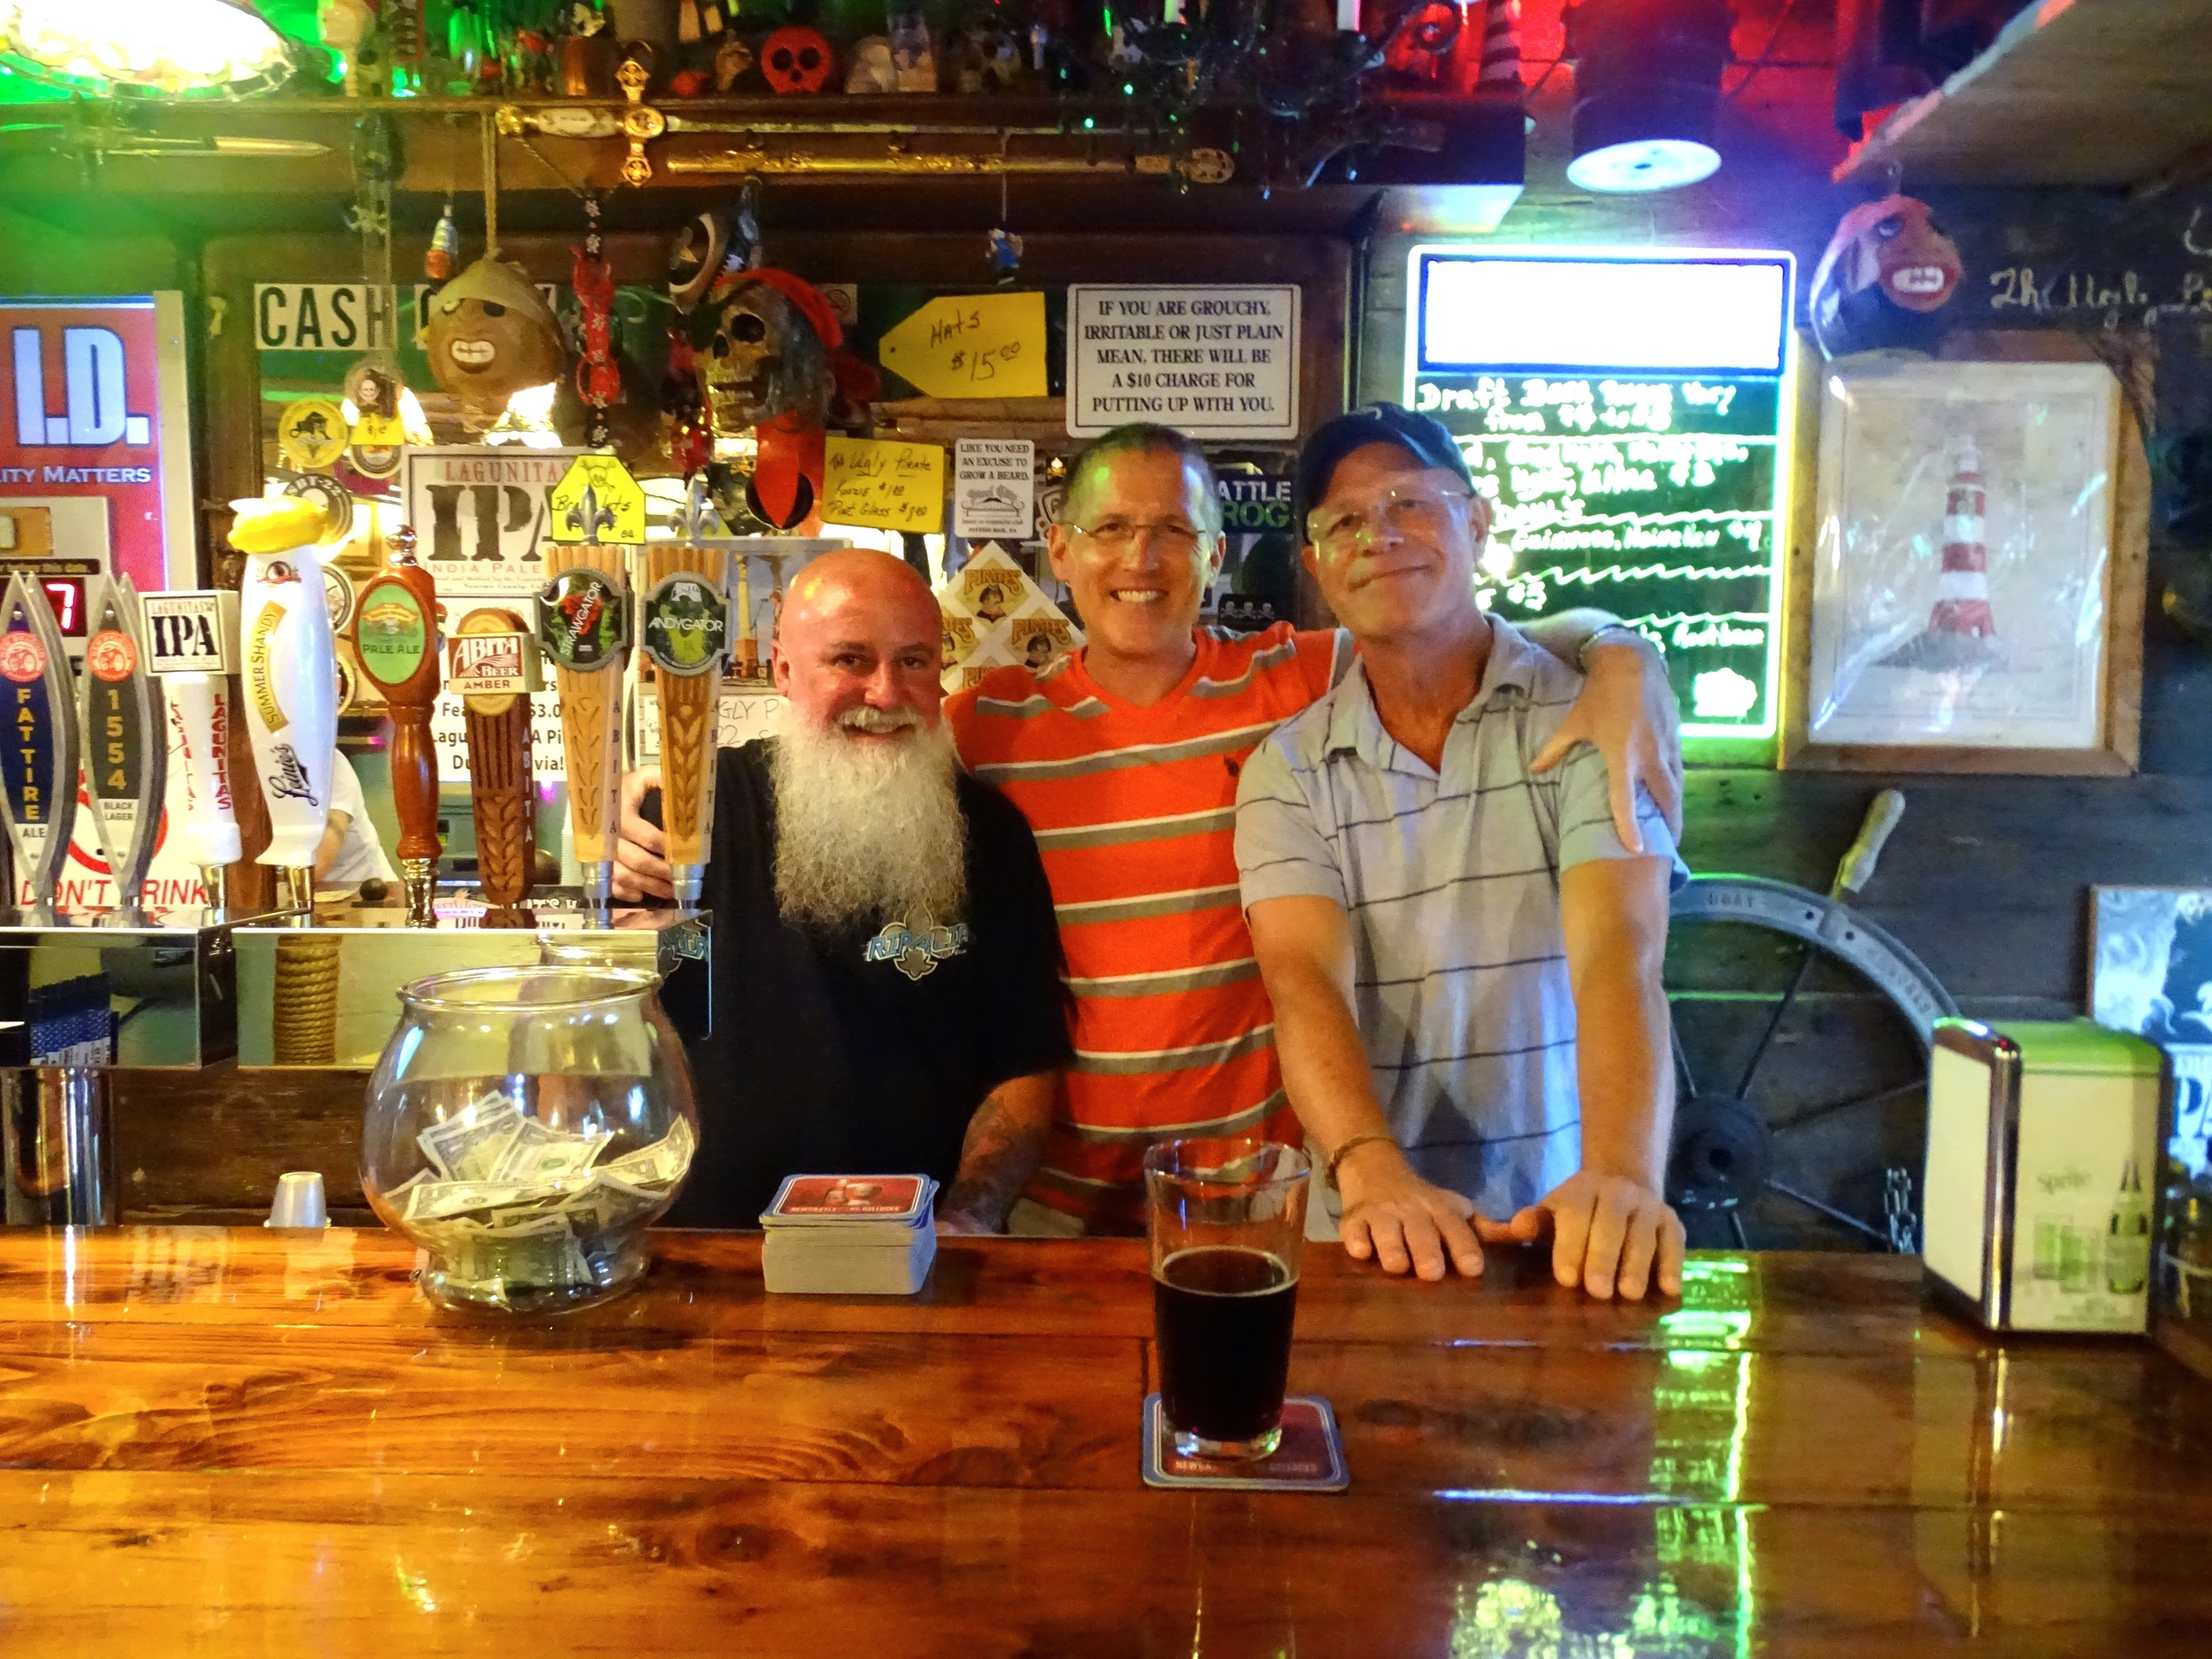 New friends at The Ugly Pirate.